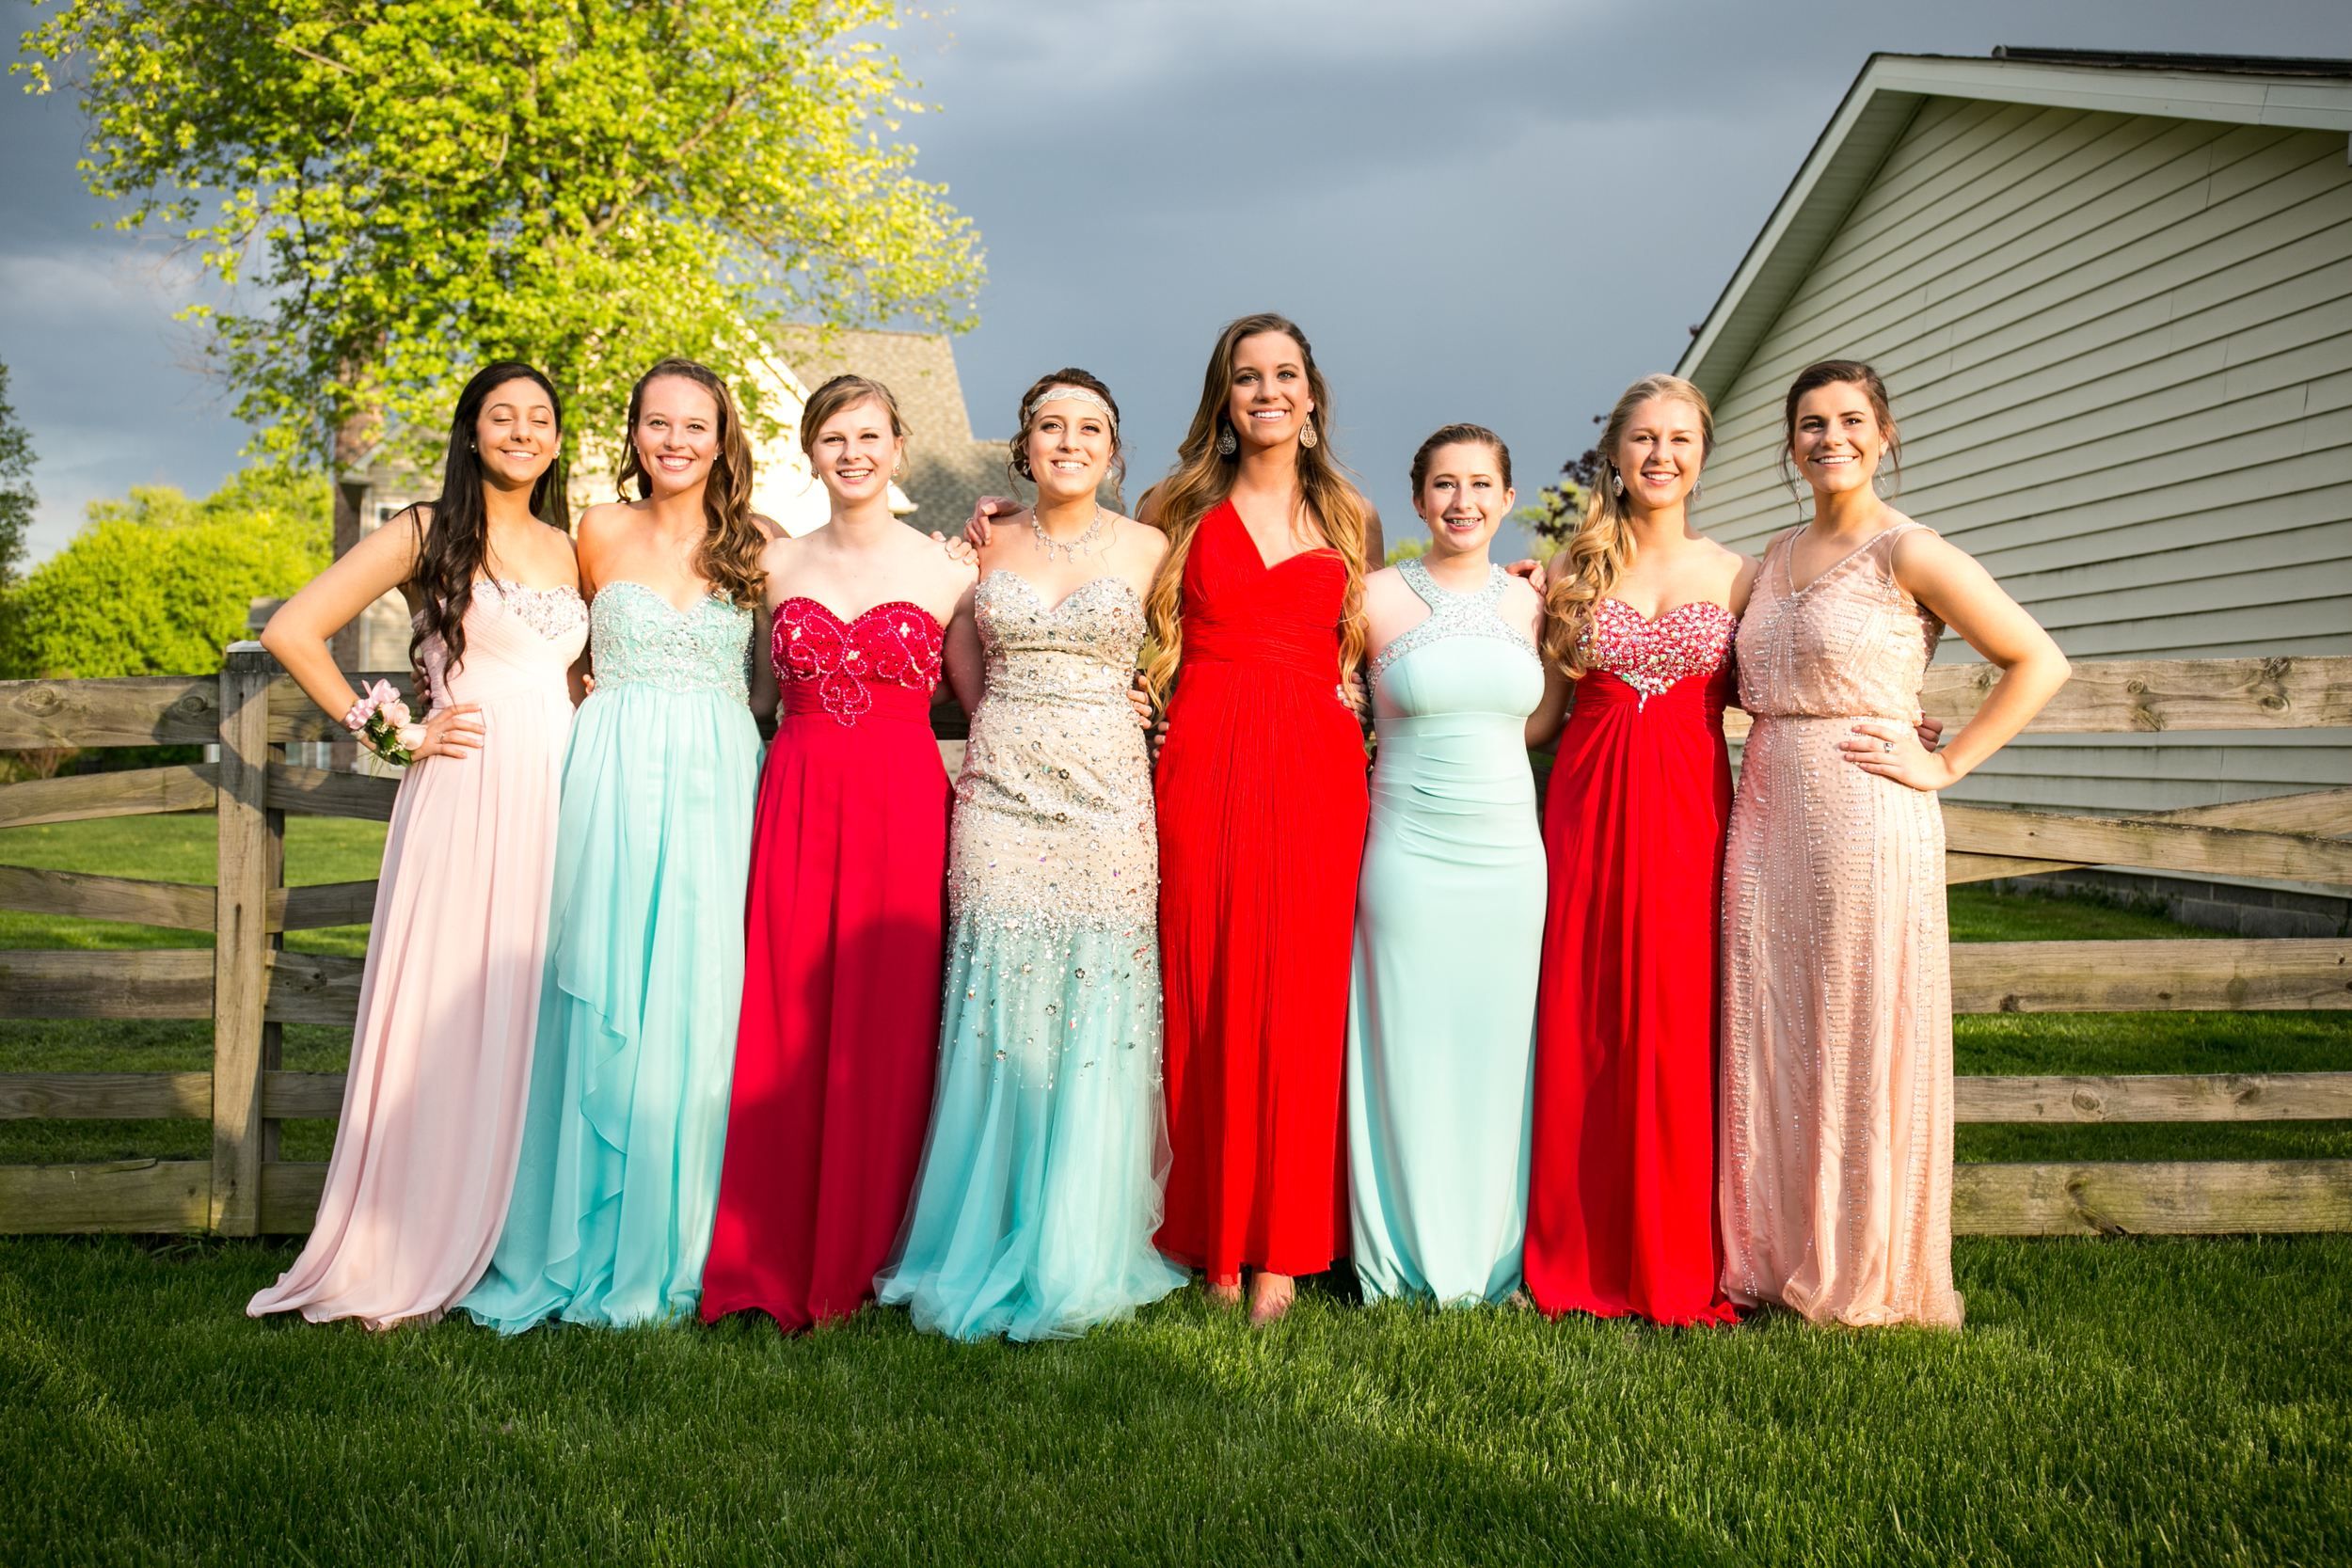 Mount-De-Sales-Pre-Prom-May-2014-2.jpg